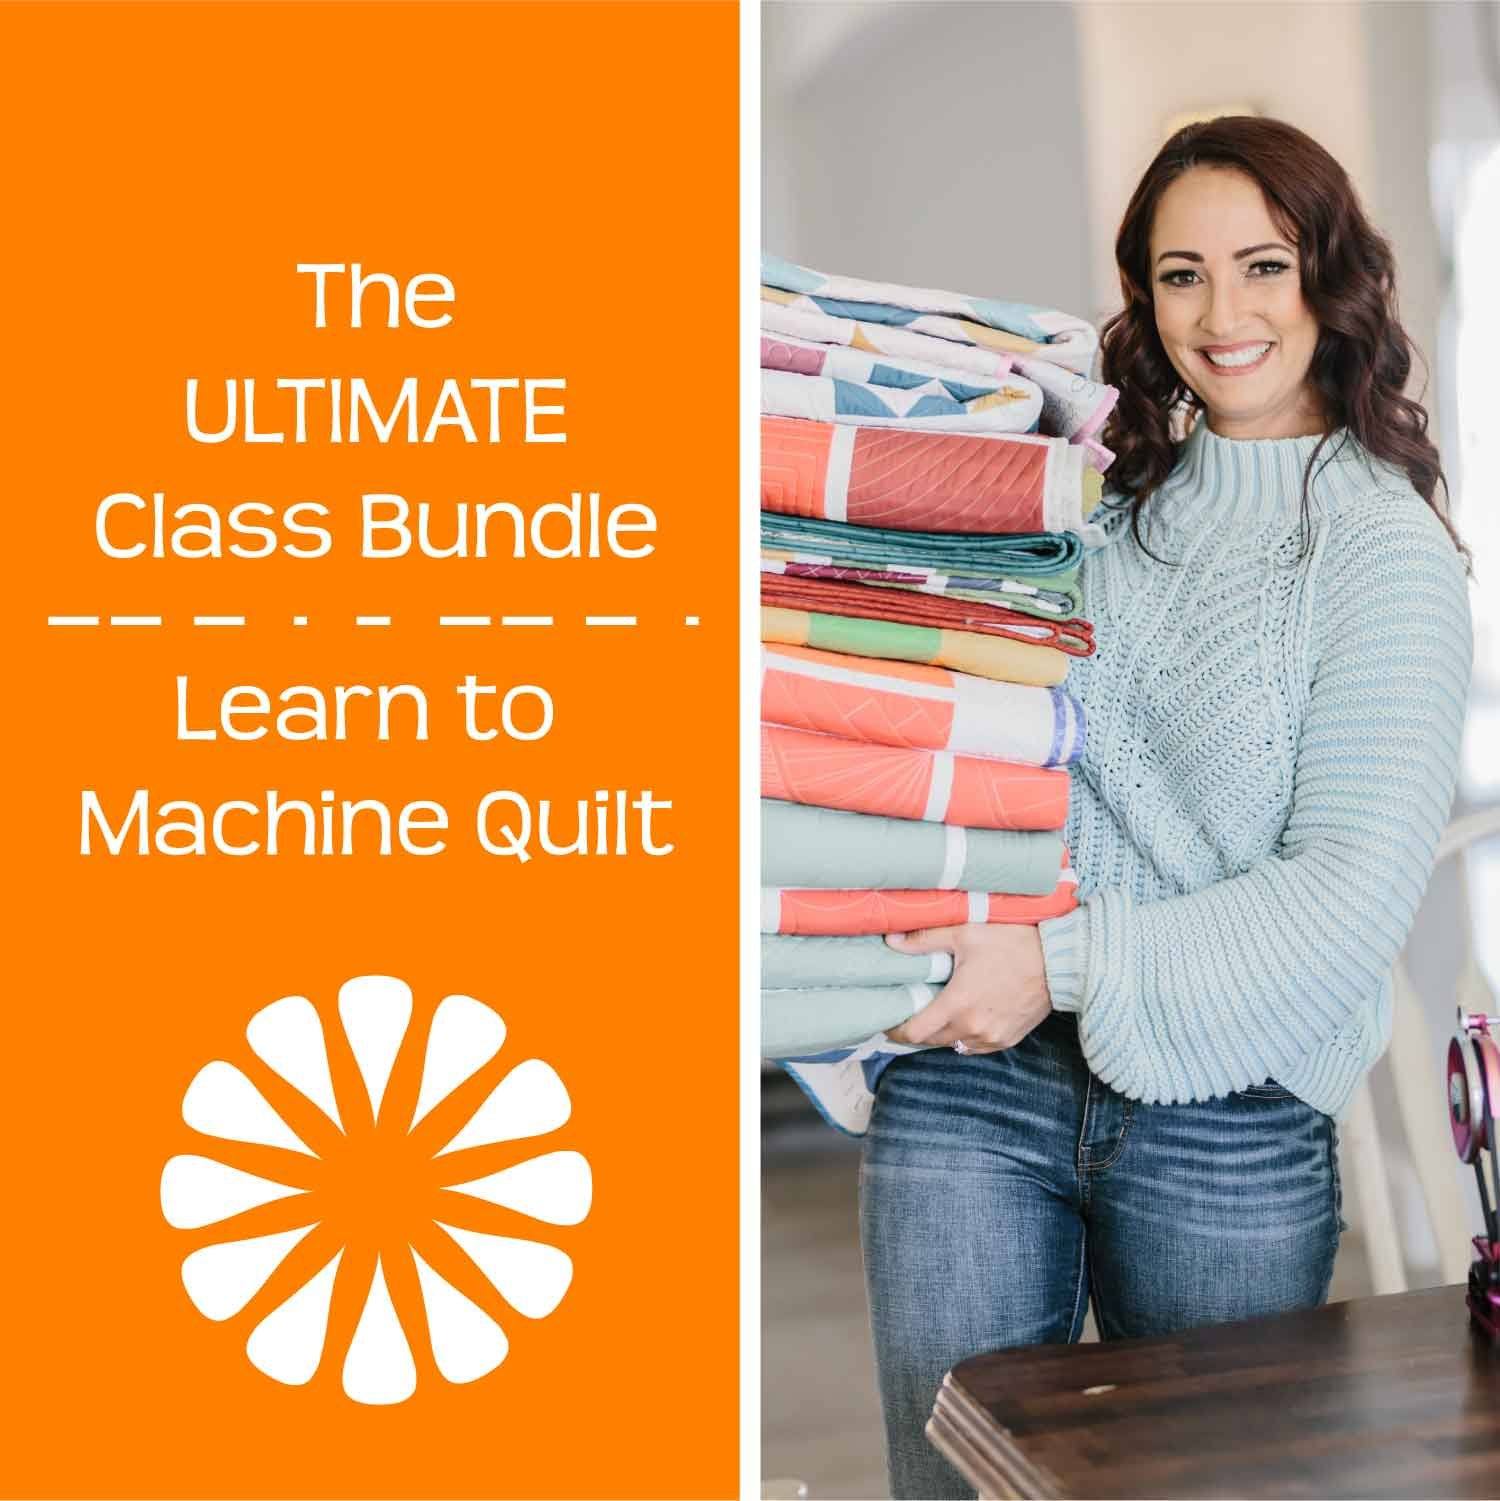 The Ultimate Class Bundle